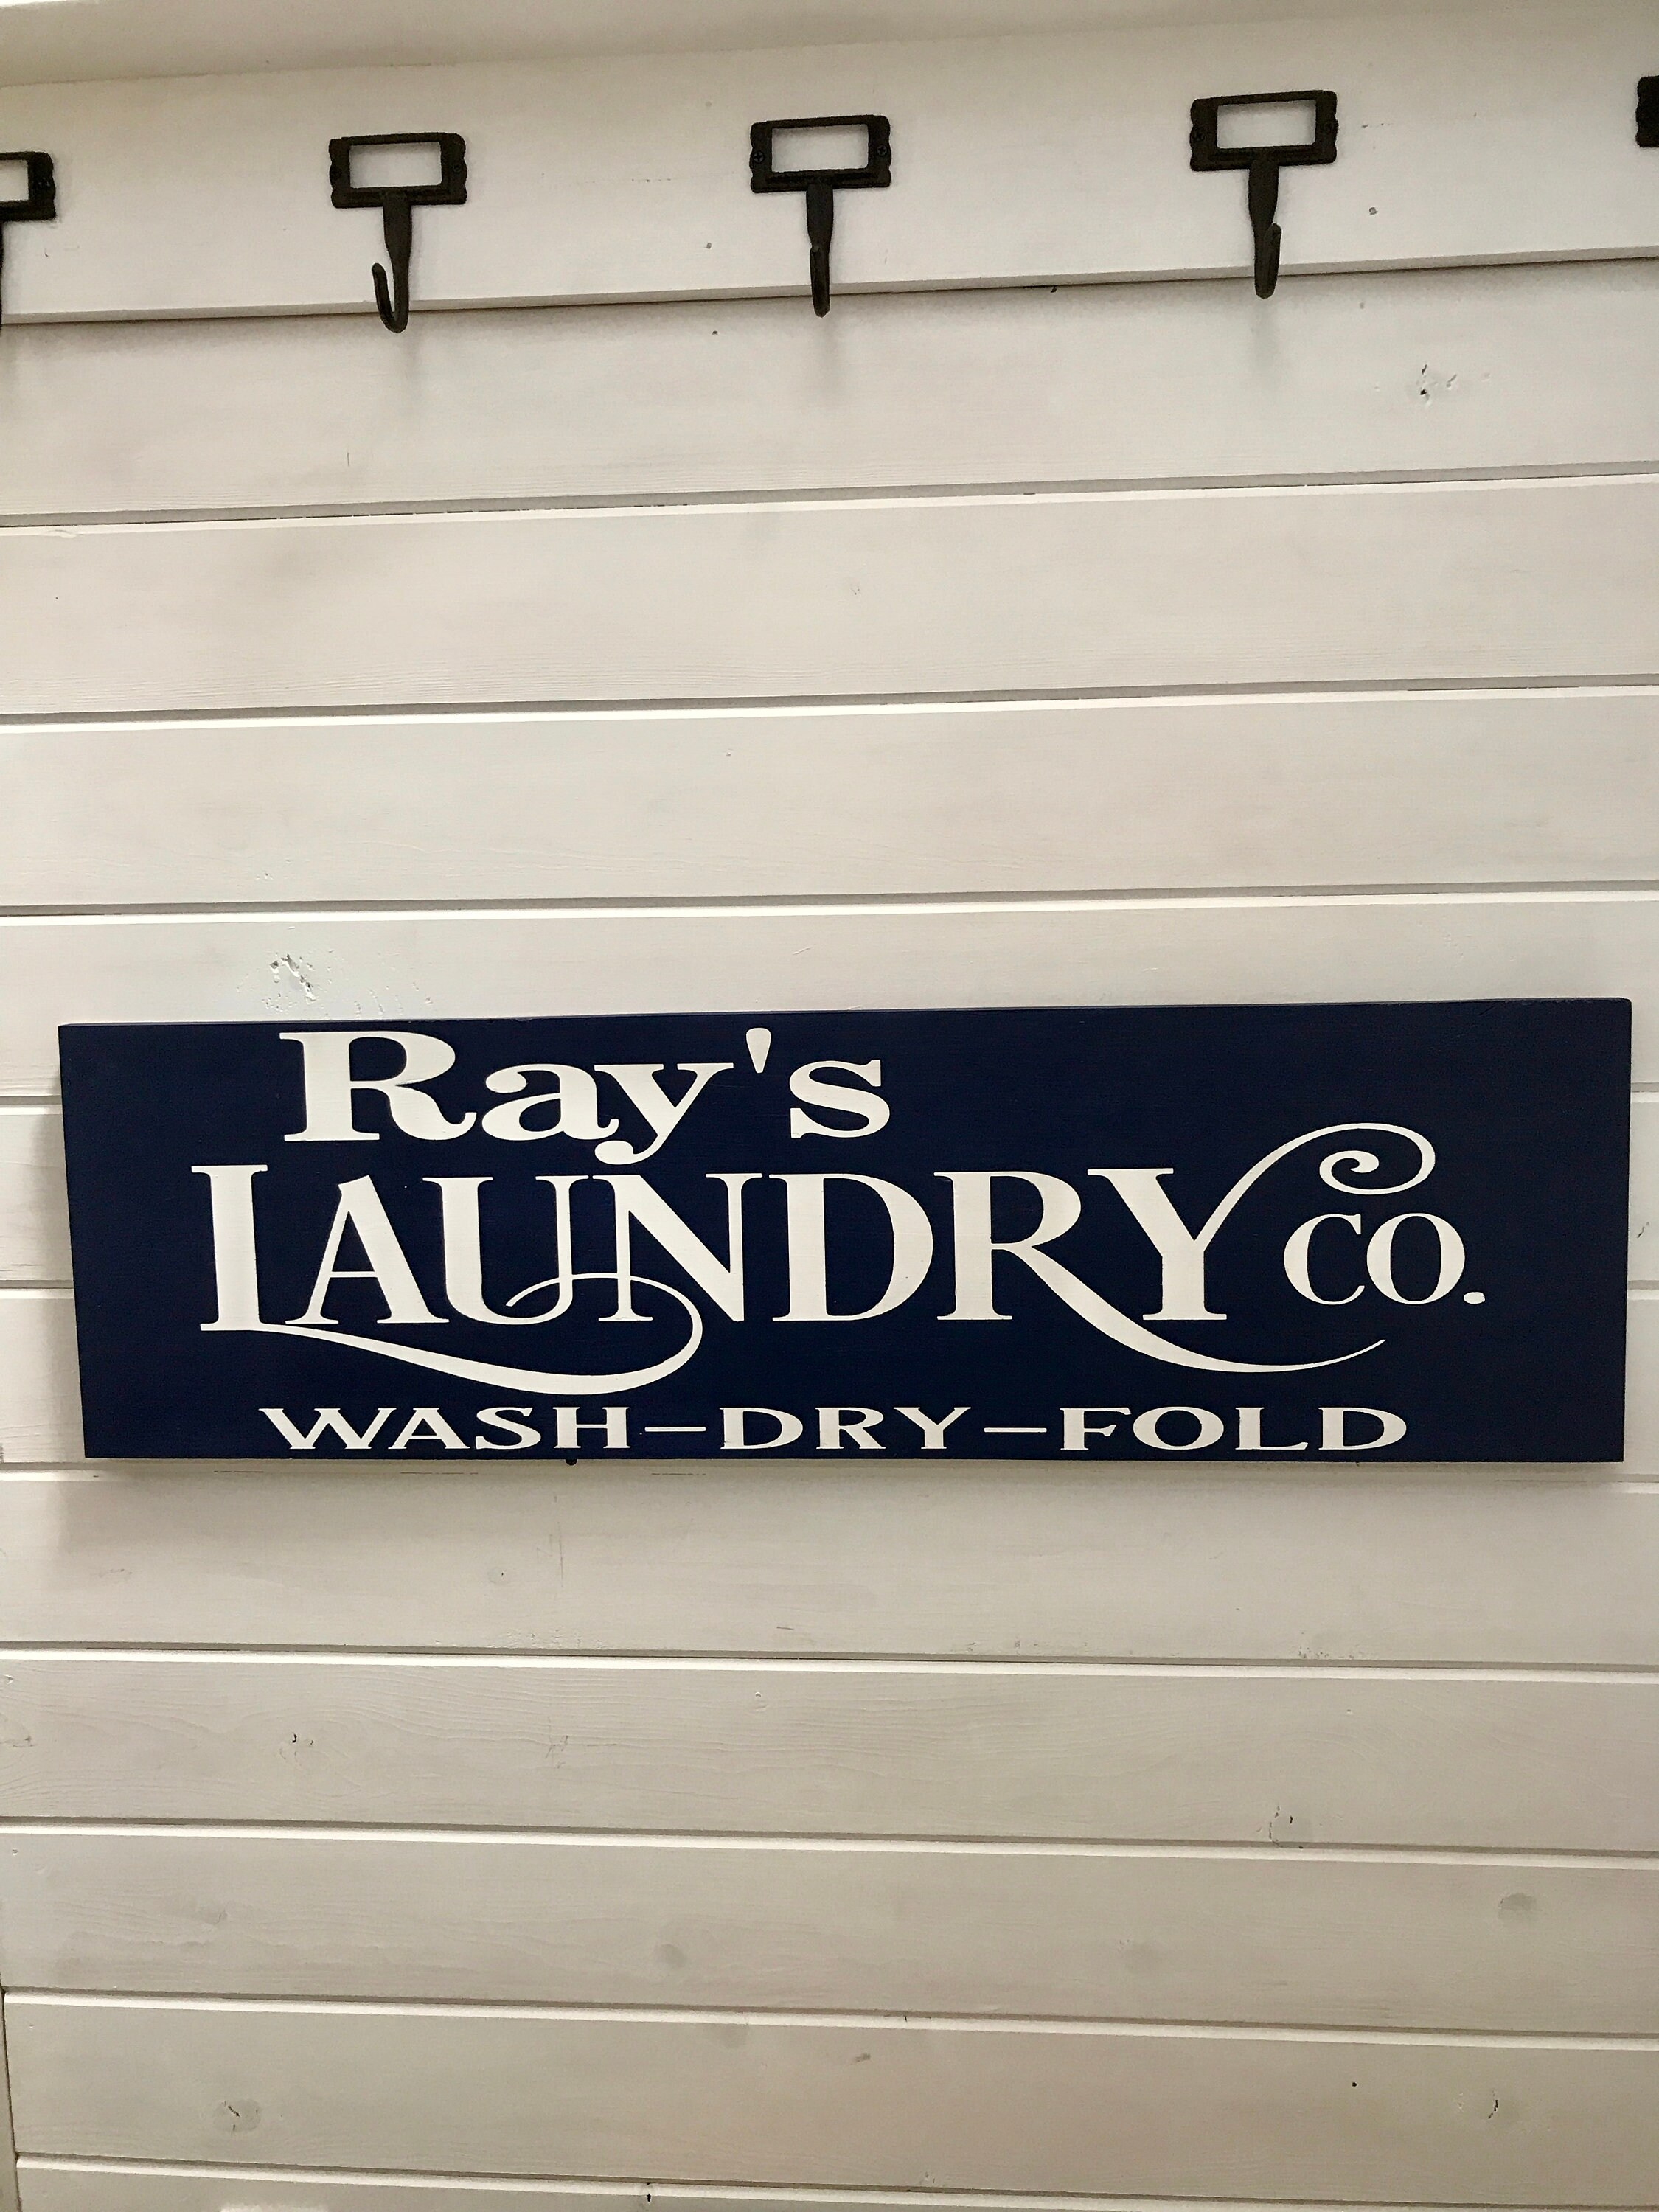 Home Decor Signs Rustic Laundry Room Sign Personalized Rustic Signs Home Decor Farmhouse Rustic Signs Personalized Home Decor Signs